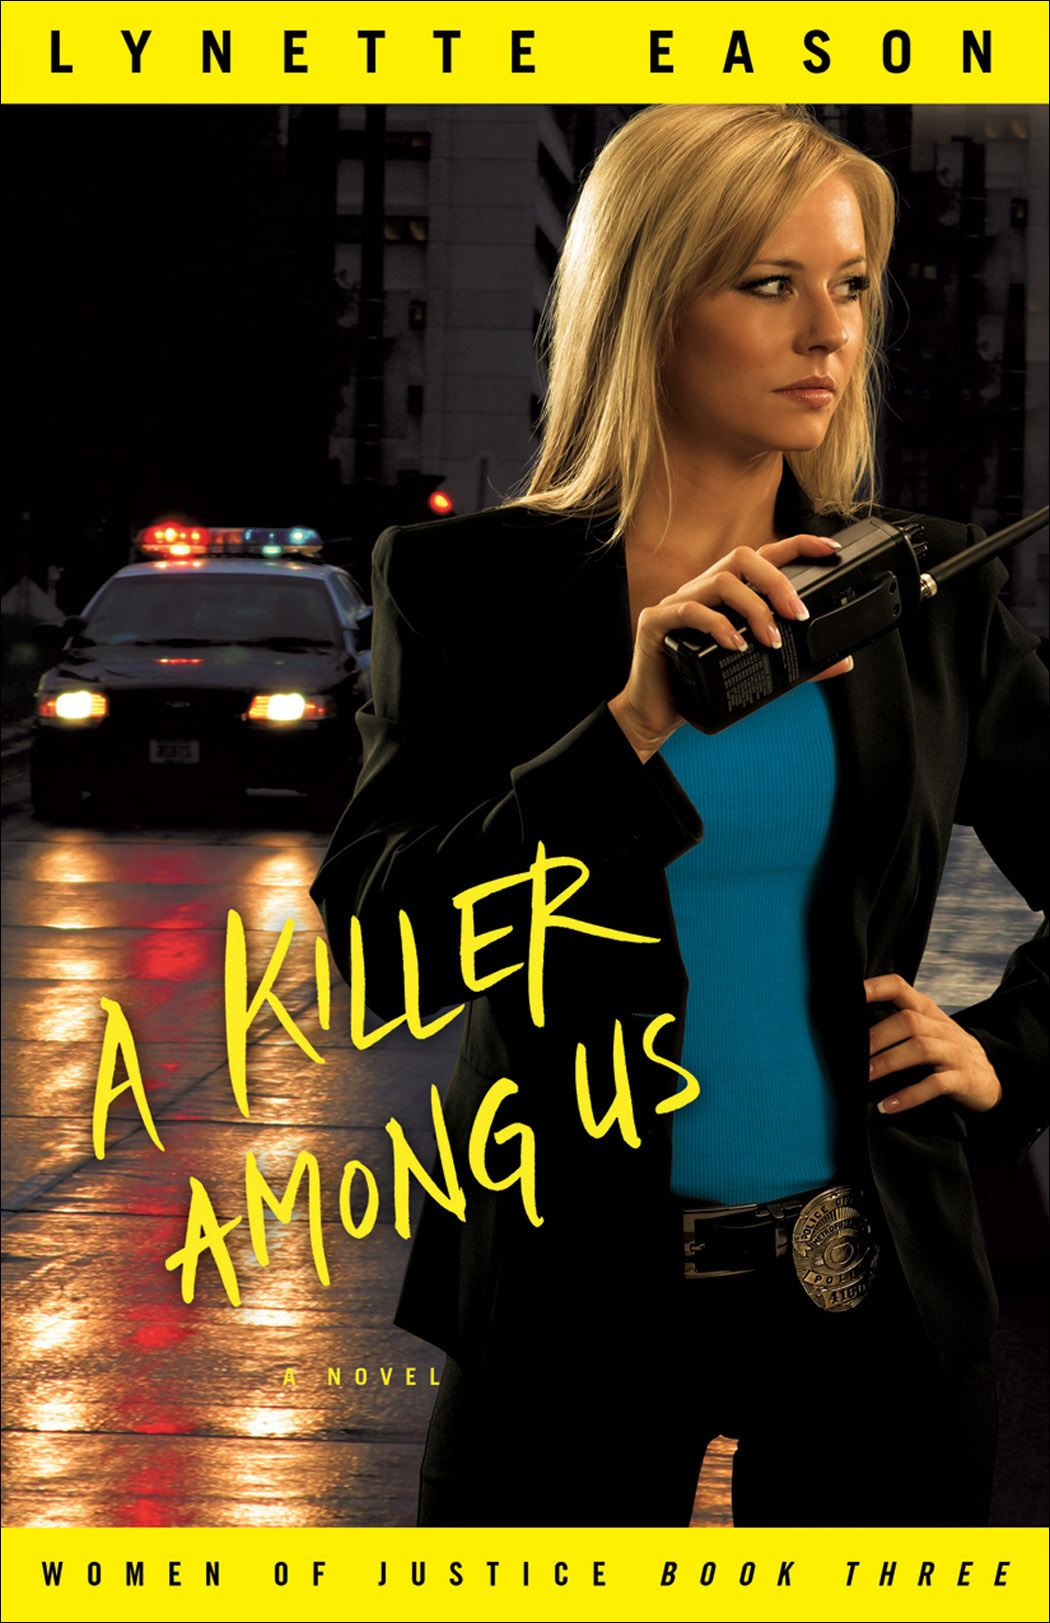 Killer Among Us, A (Women of Justice Book #3) By: Lynette Eason